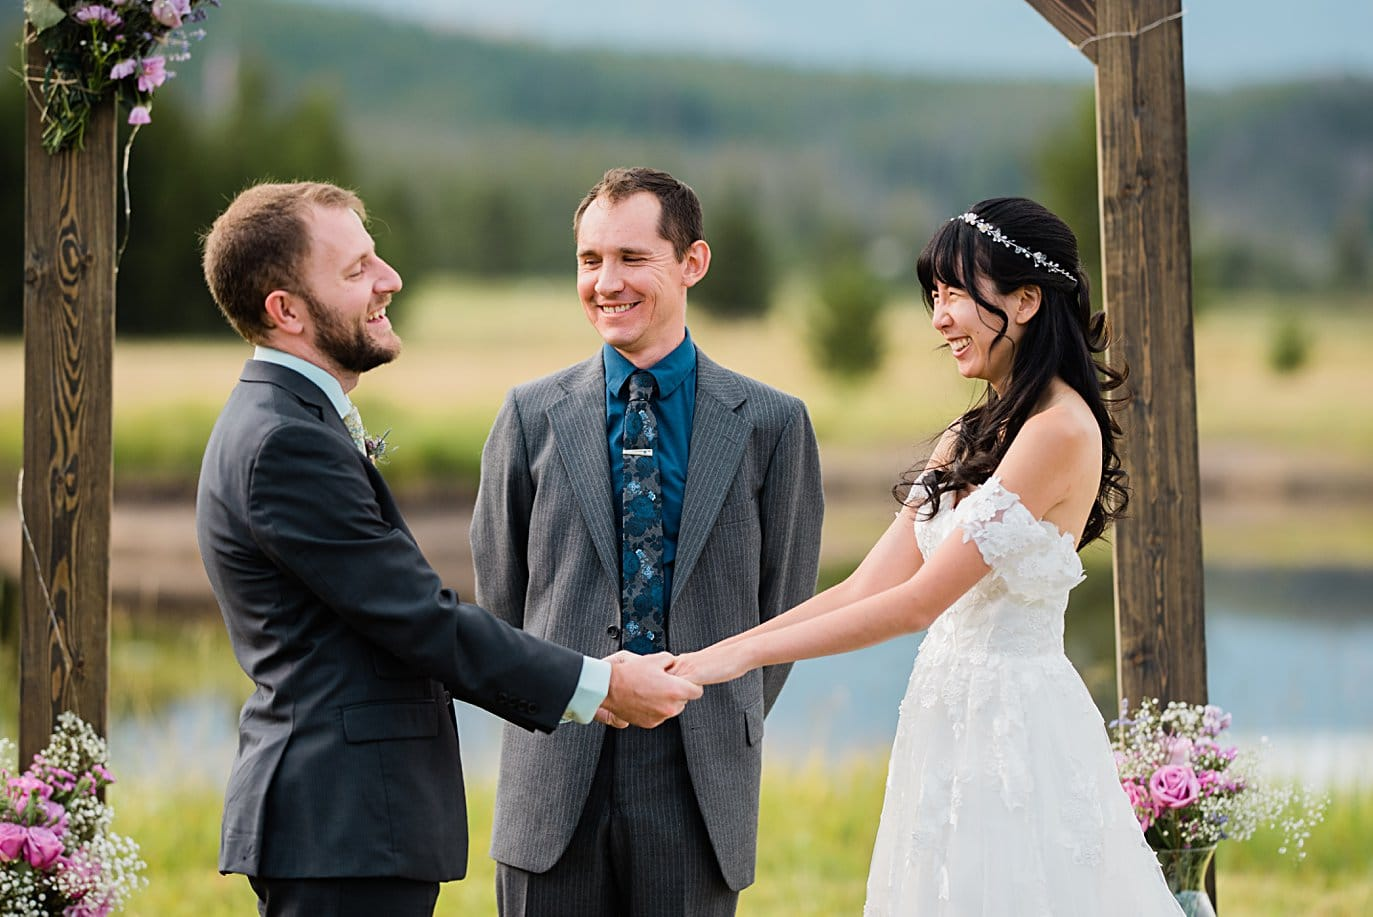 bride and groom laugh during vows at intimate Grand Lake wedding by Denver wedding photographer Jennie Crate